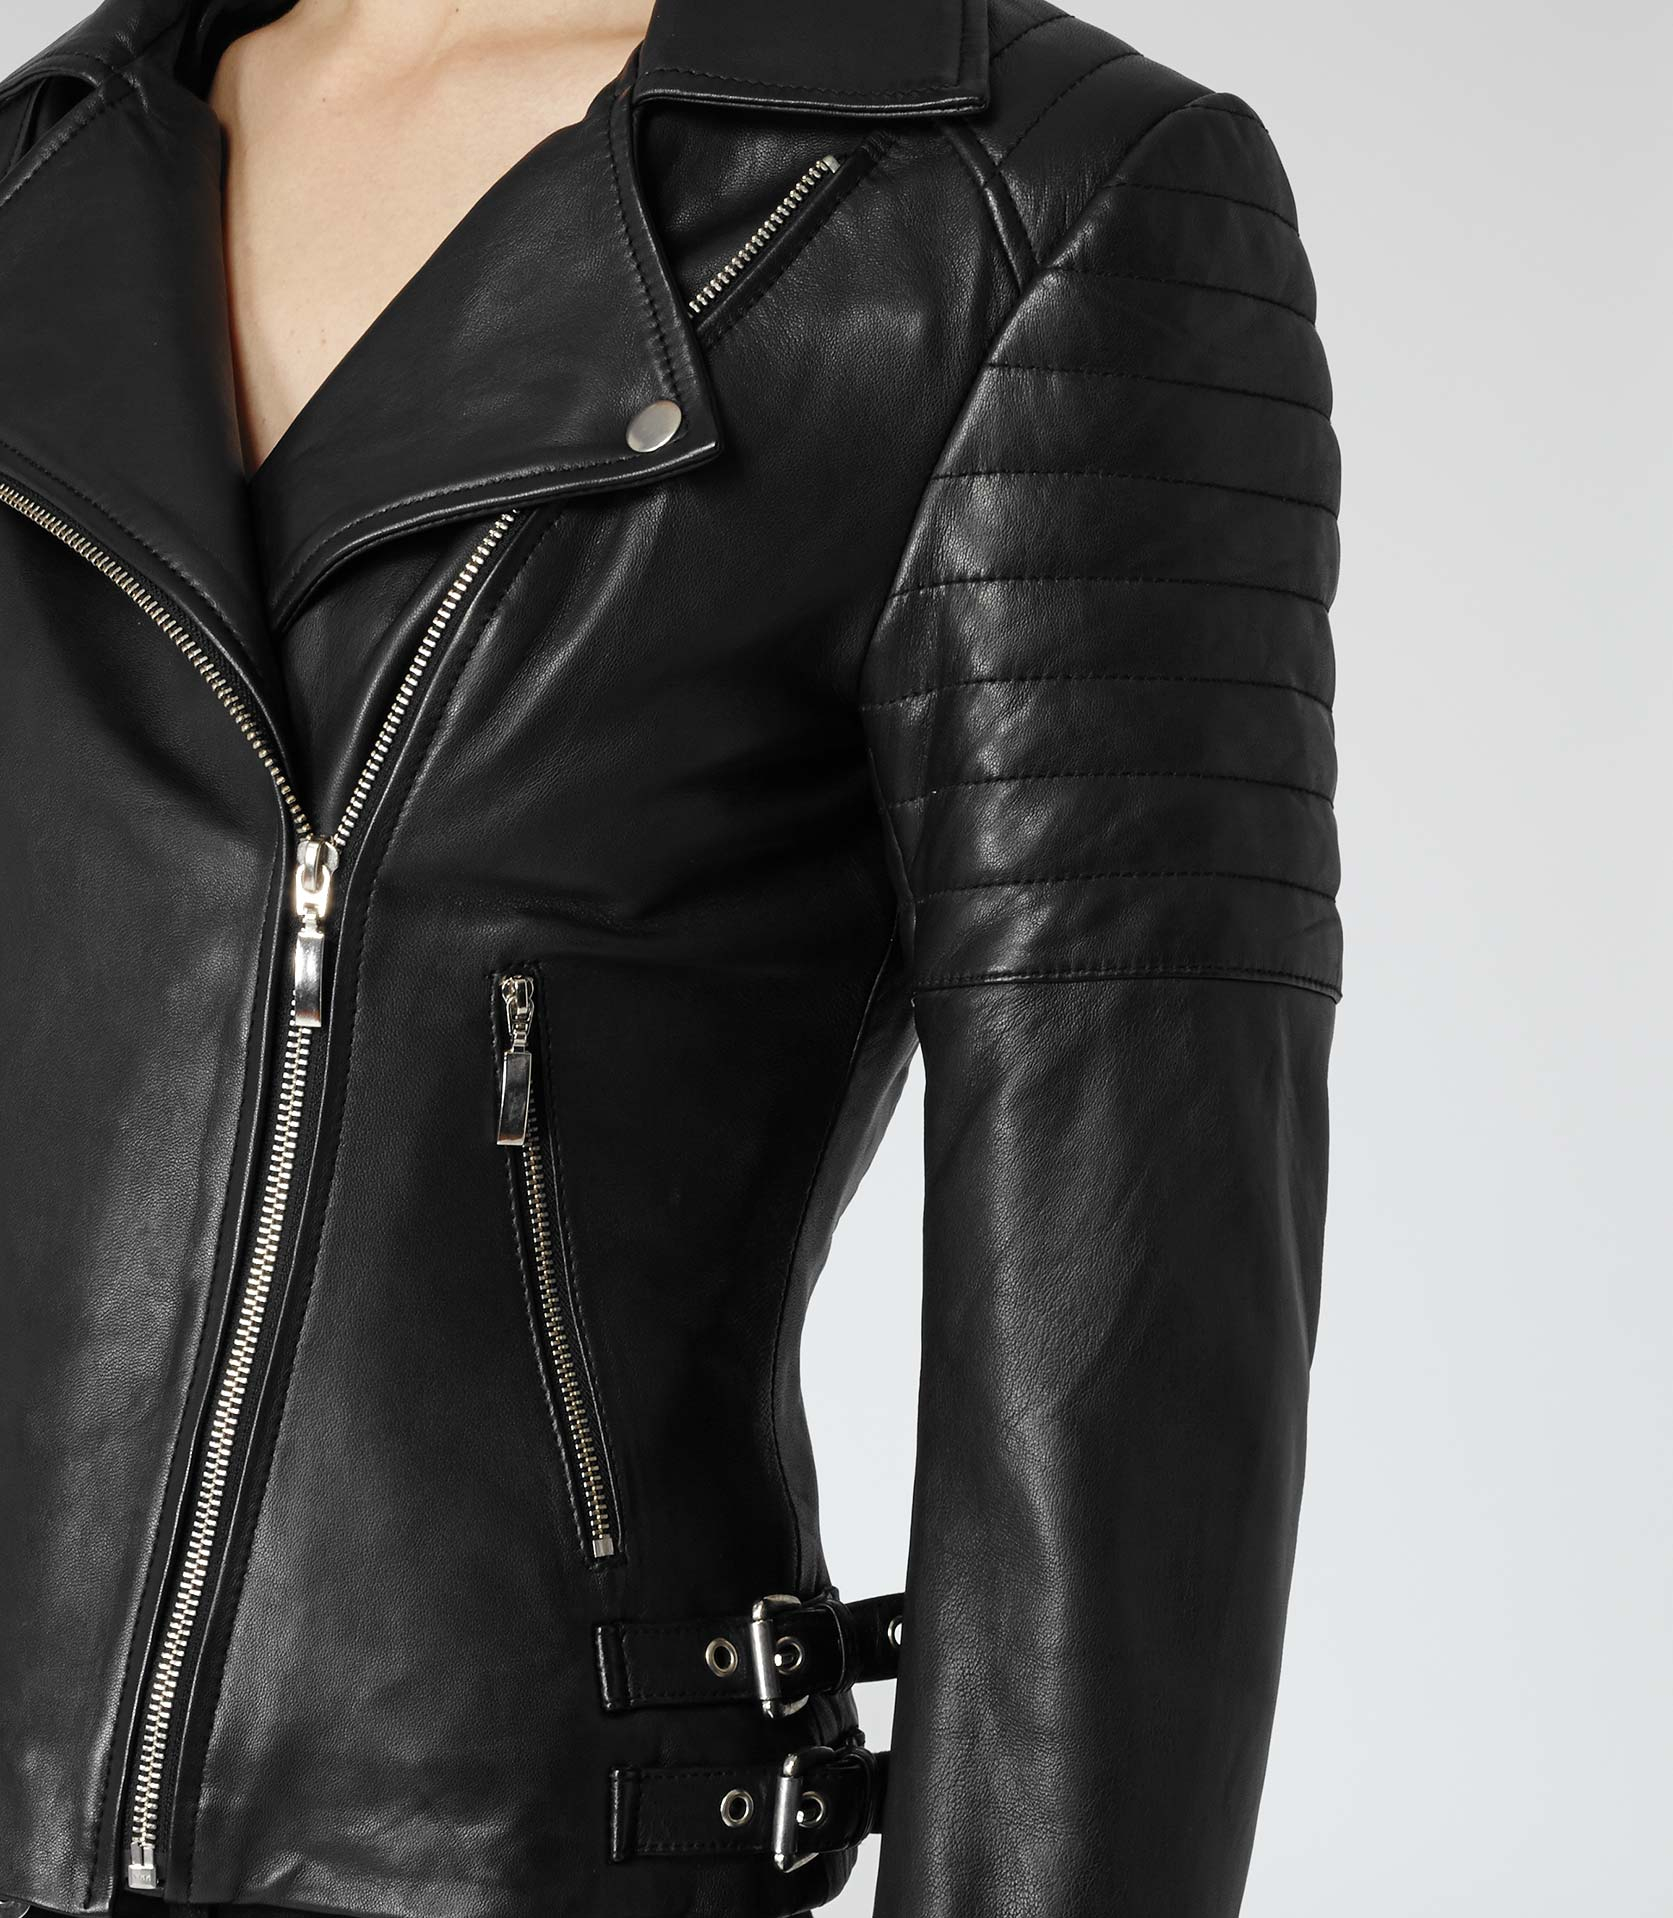 Leather motorcycle jackets for women fashion 75